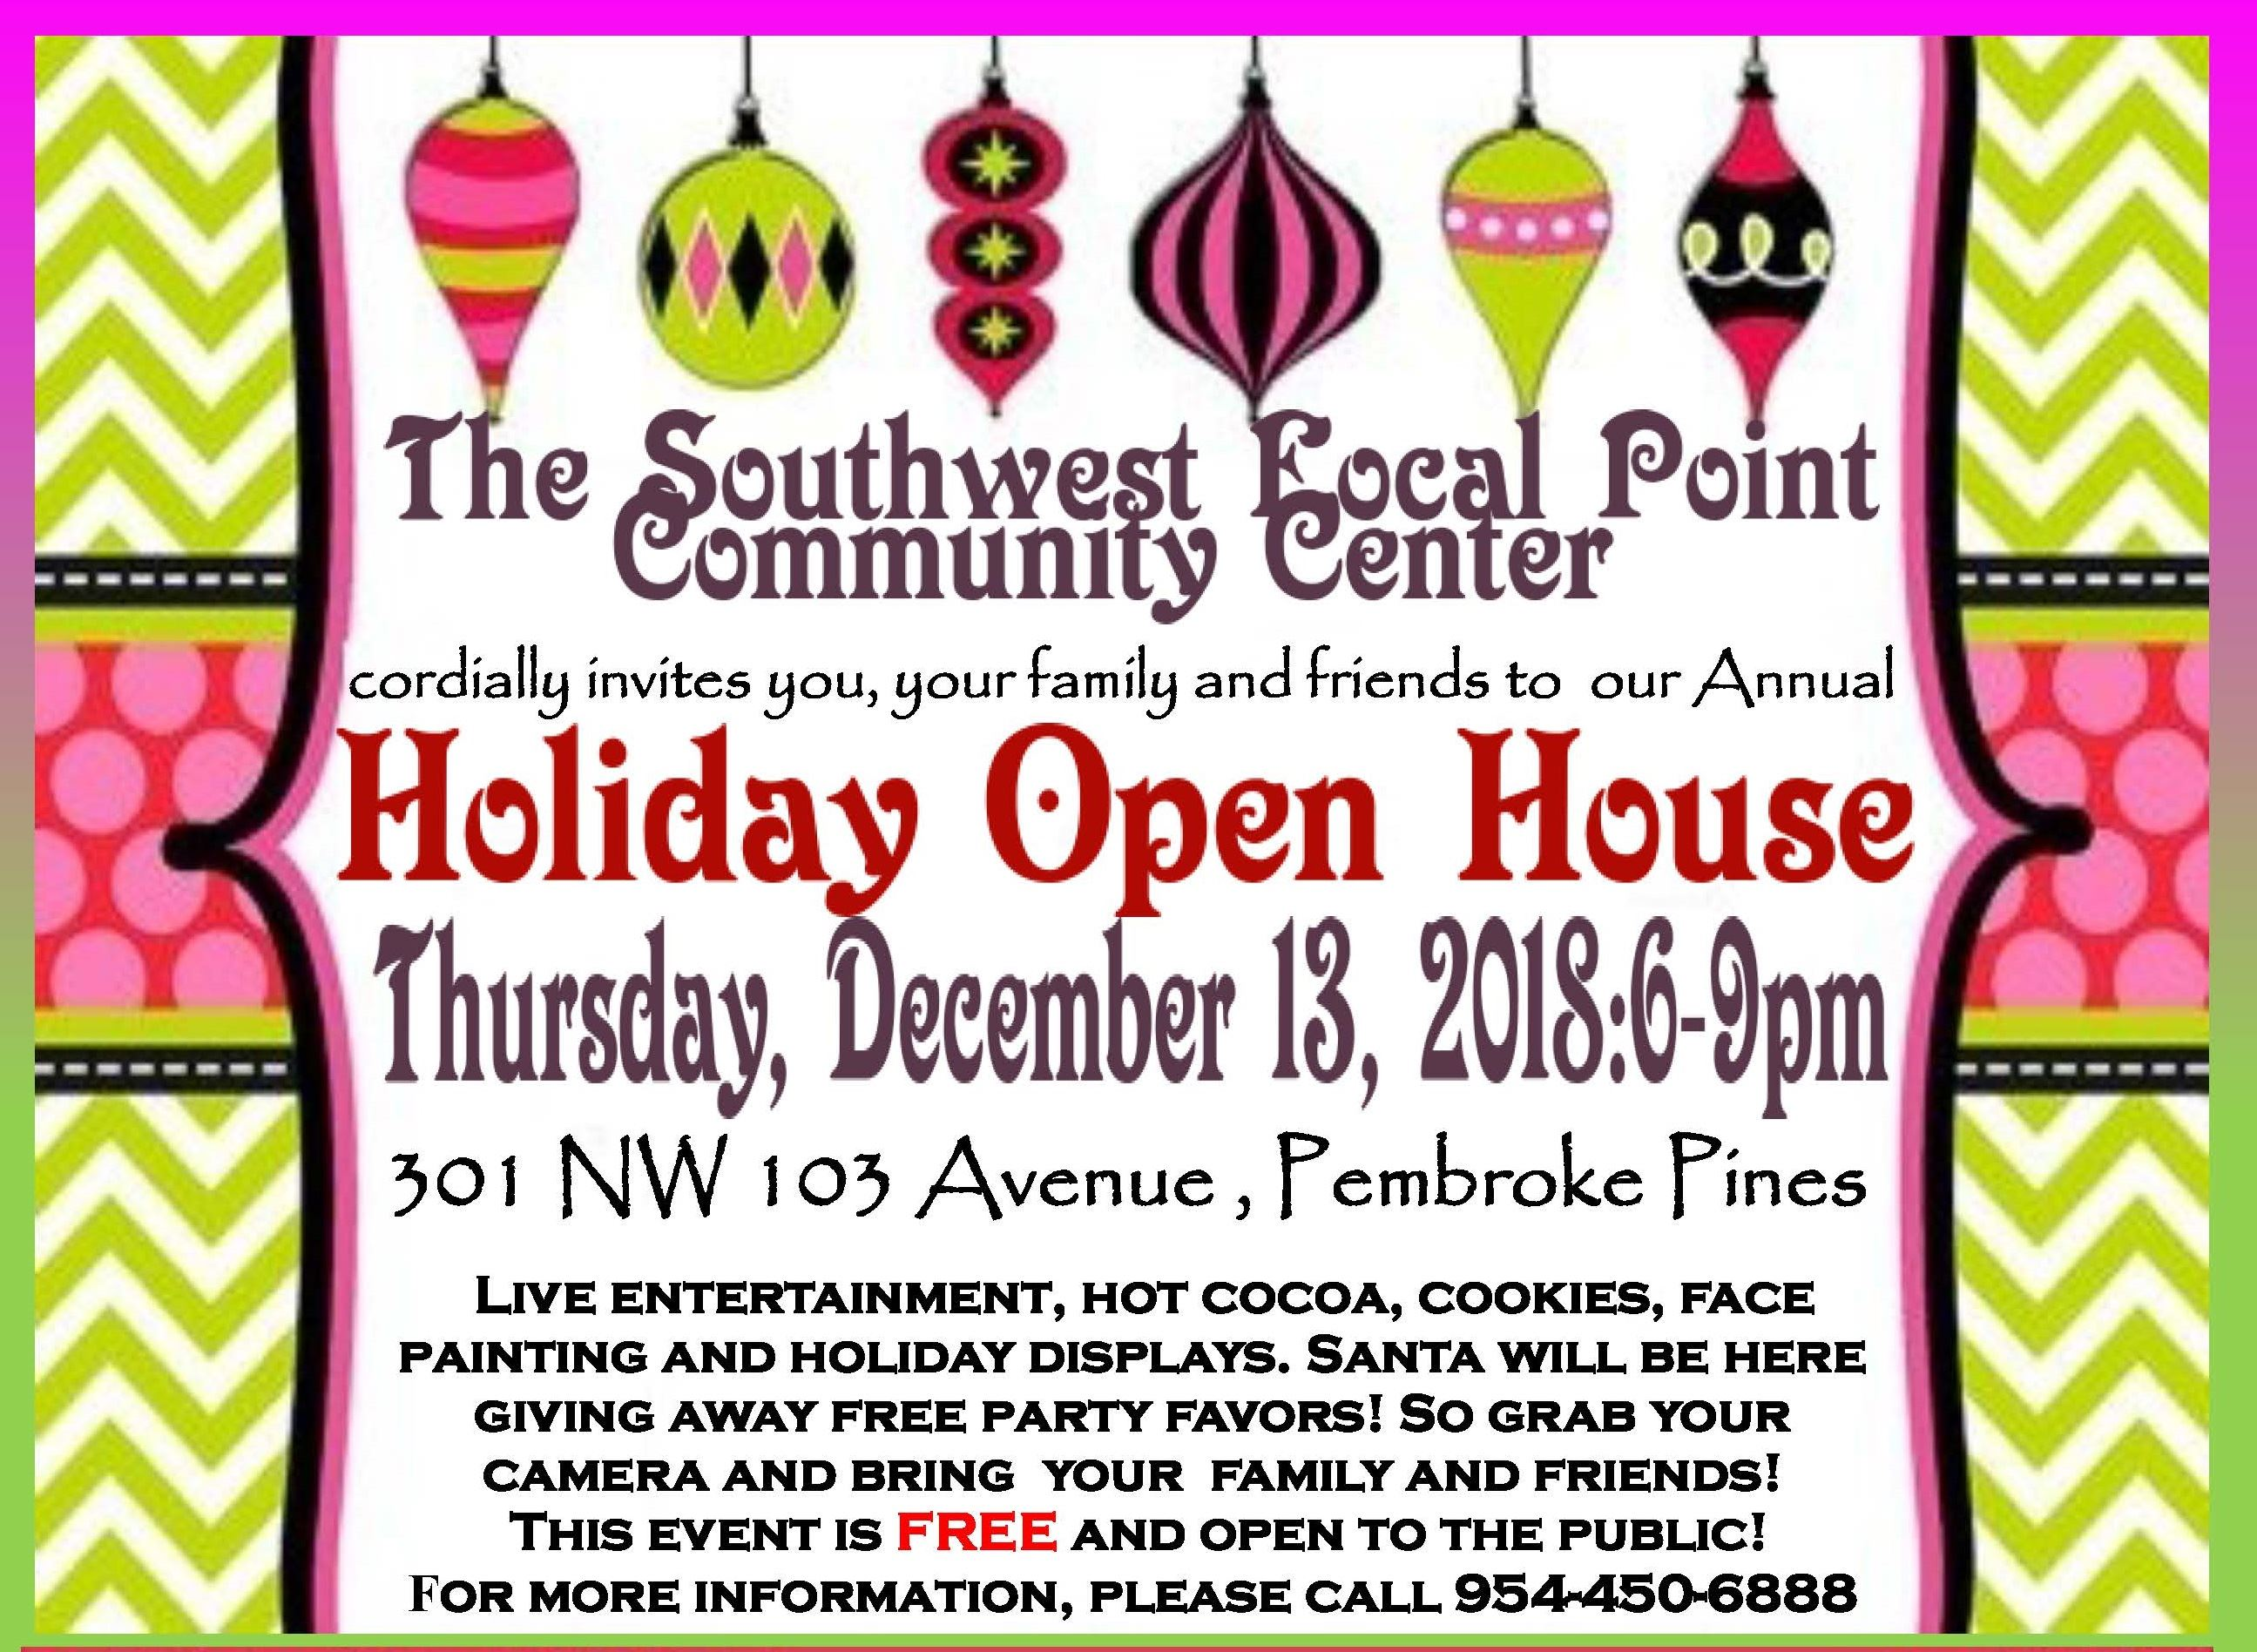 HOLIDAY OPEN HOUSE POSTER option (6) English only